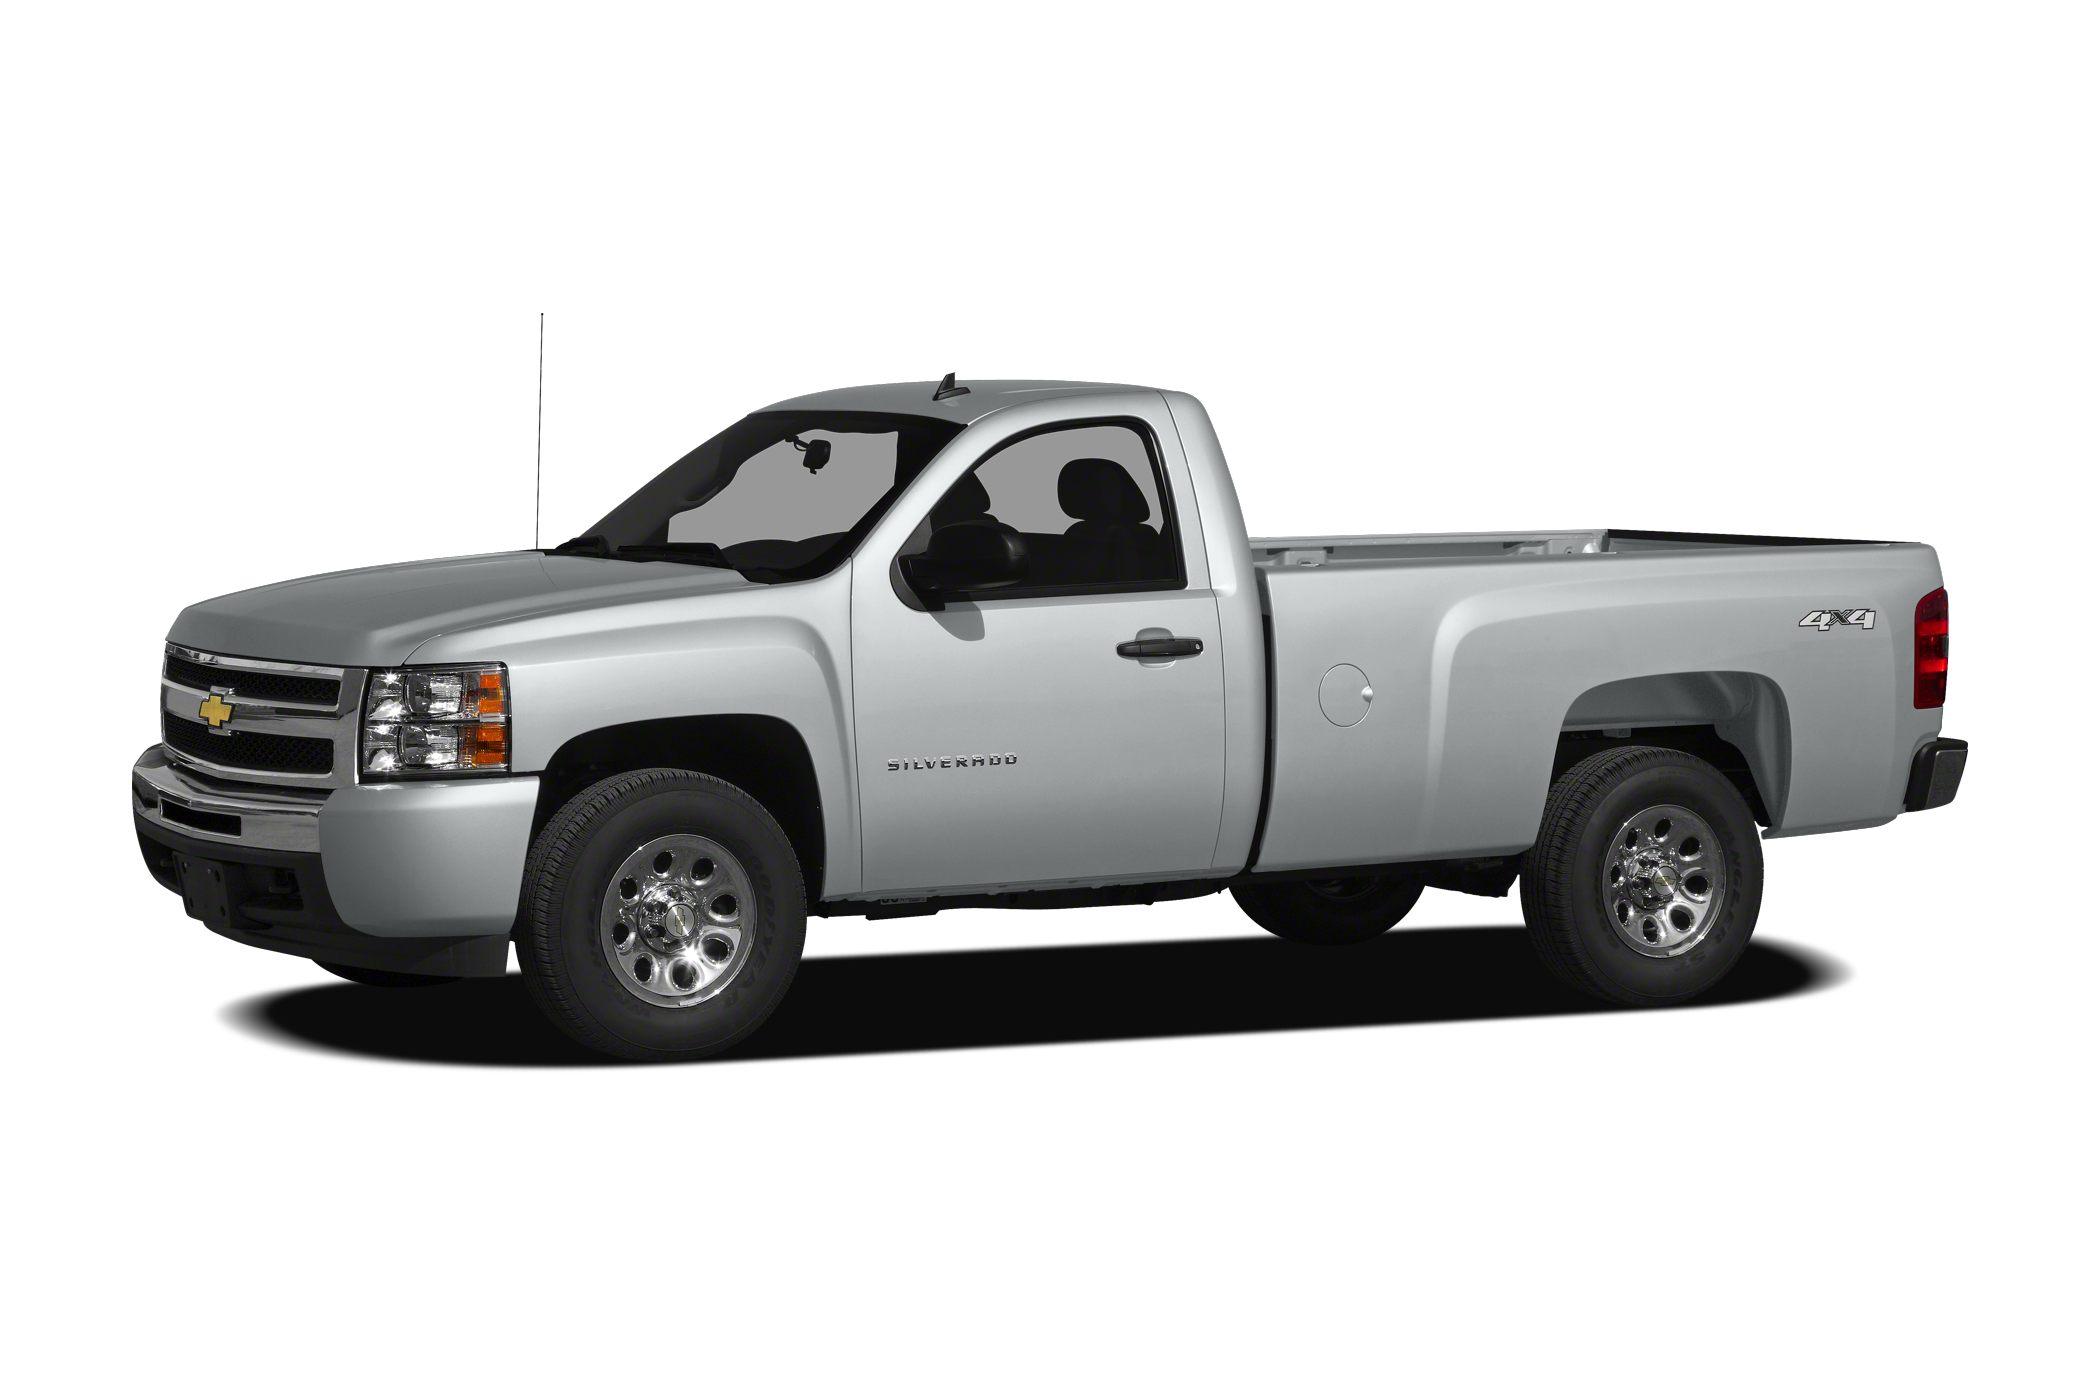 2011 Chevrolet Silverado 1500 Work Truck 4x2 Regular Cab 8 Ft Box 133 In Wb Specs And Prices